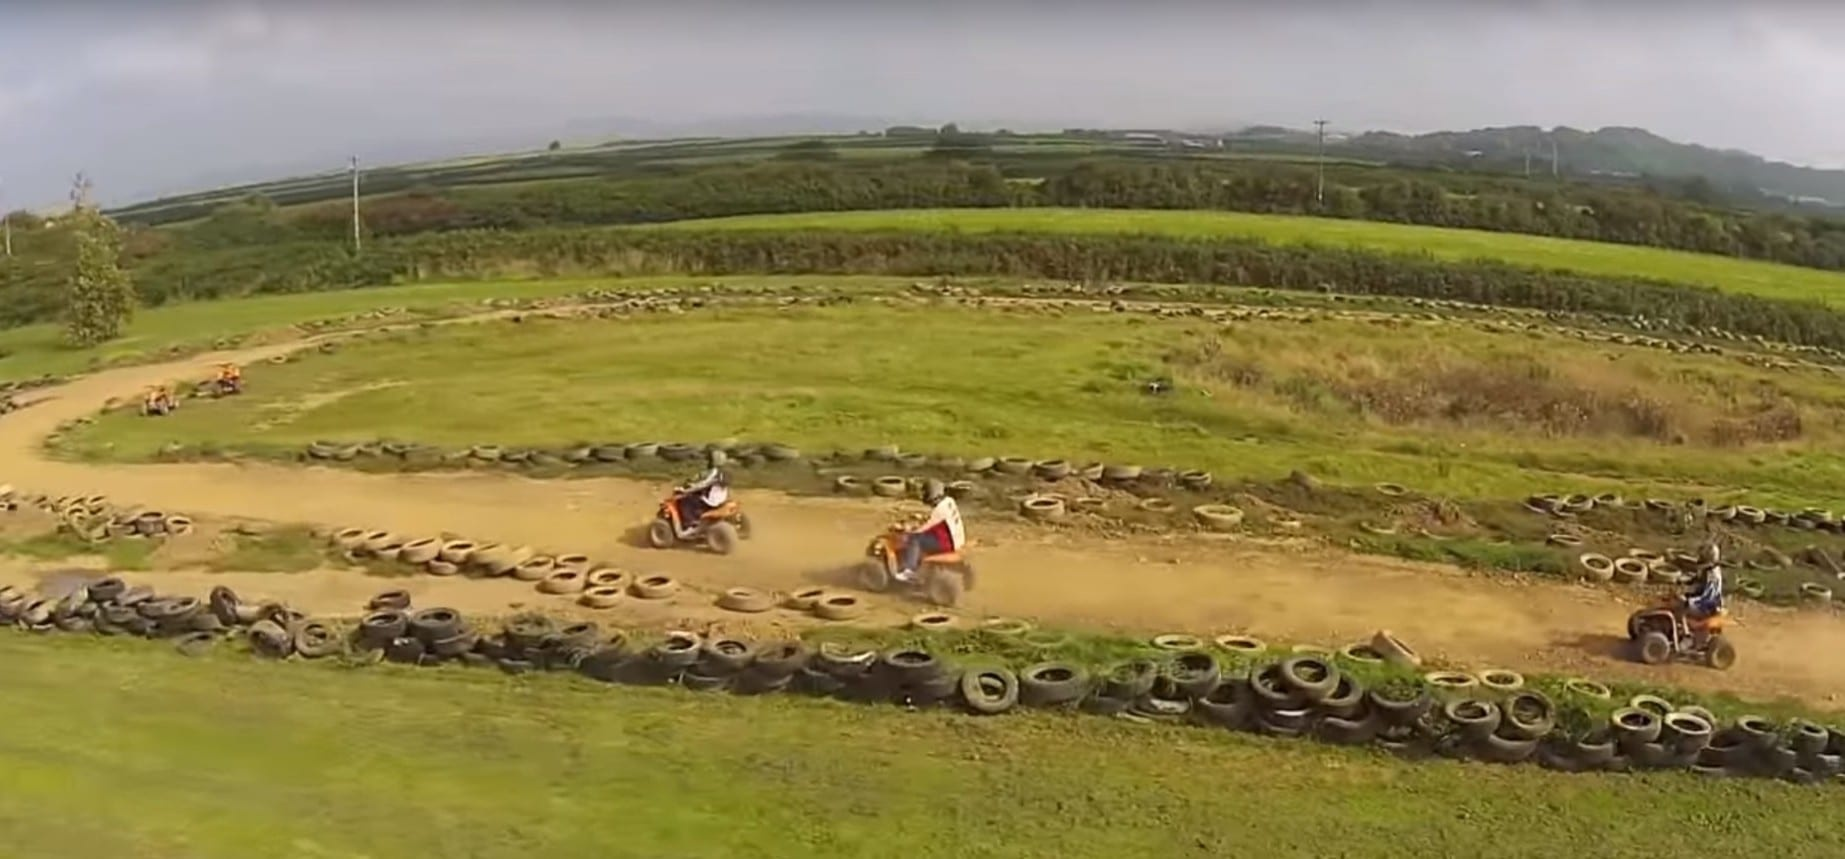 Quad Bike Racing Experience in Wales-3